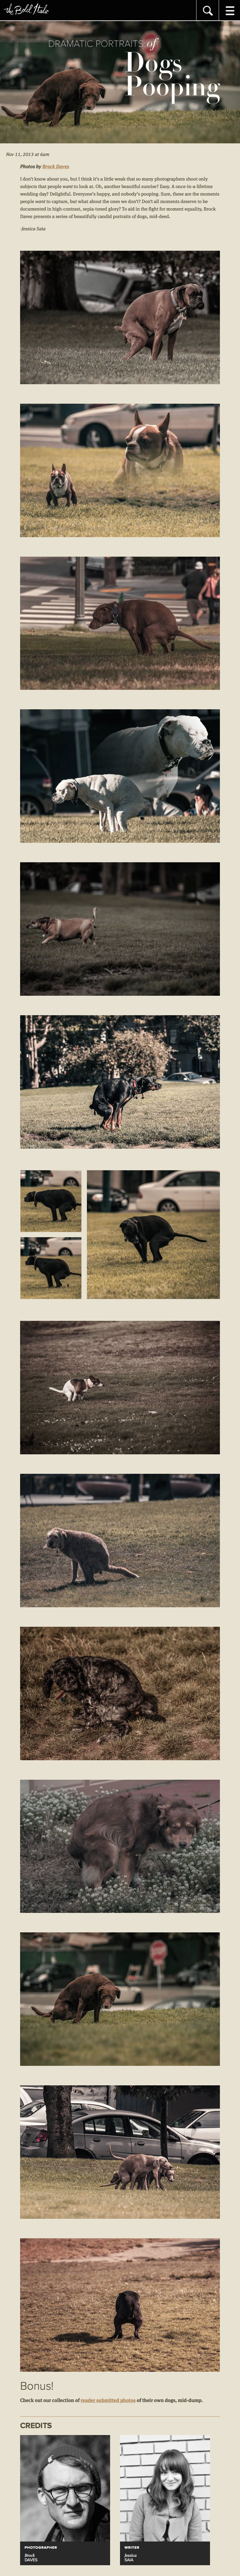 Dogs Pooping.png